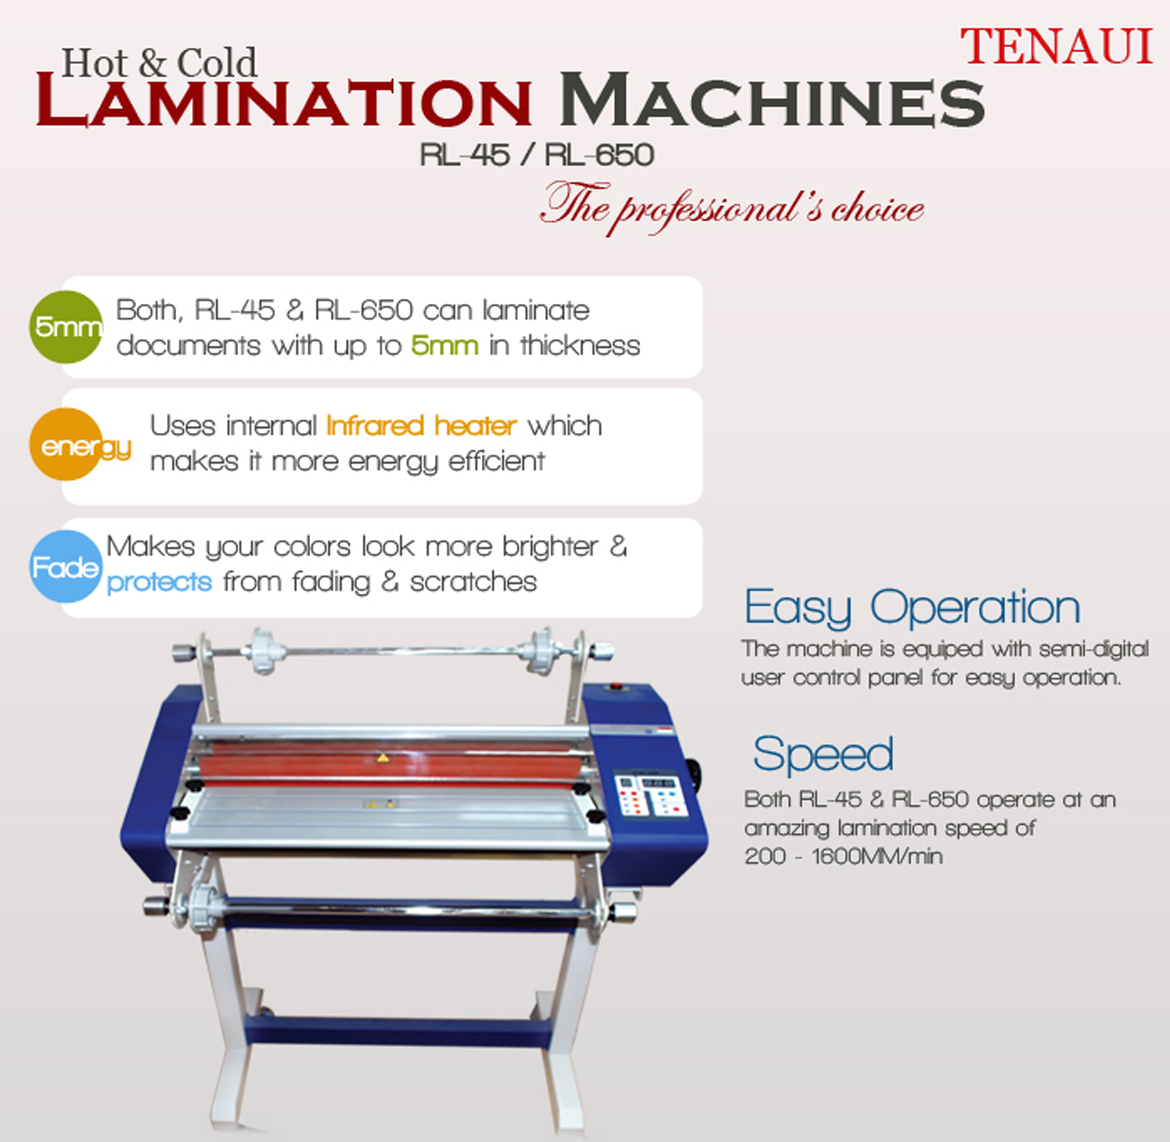 hot-old-lamination-tenaui1